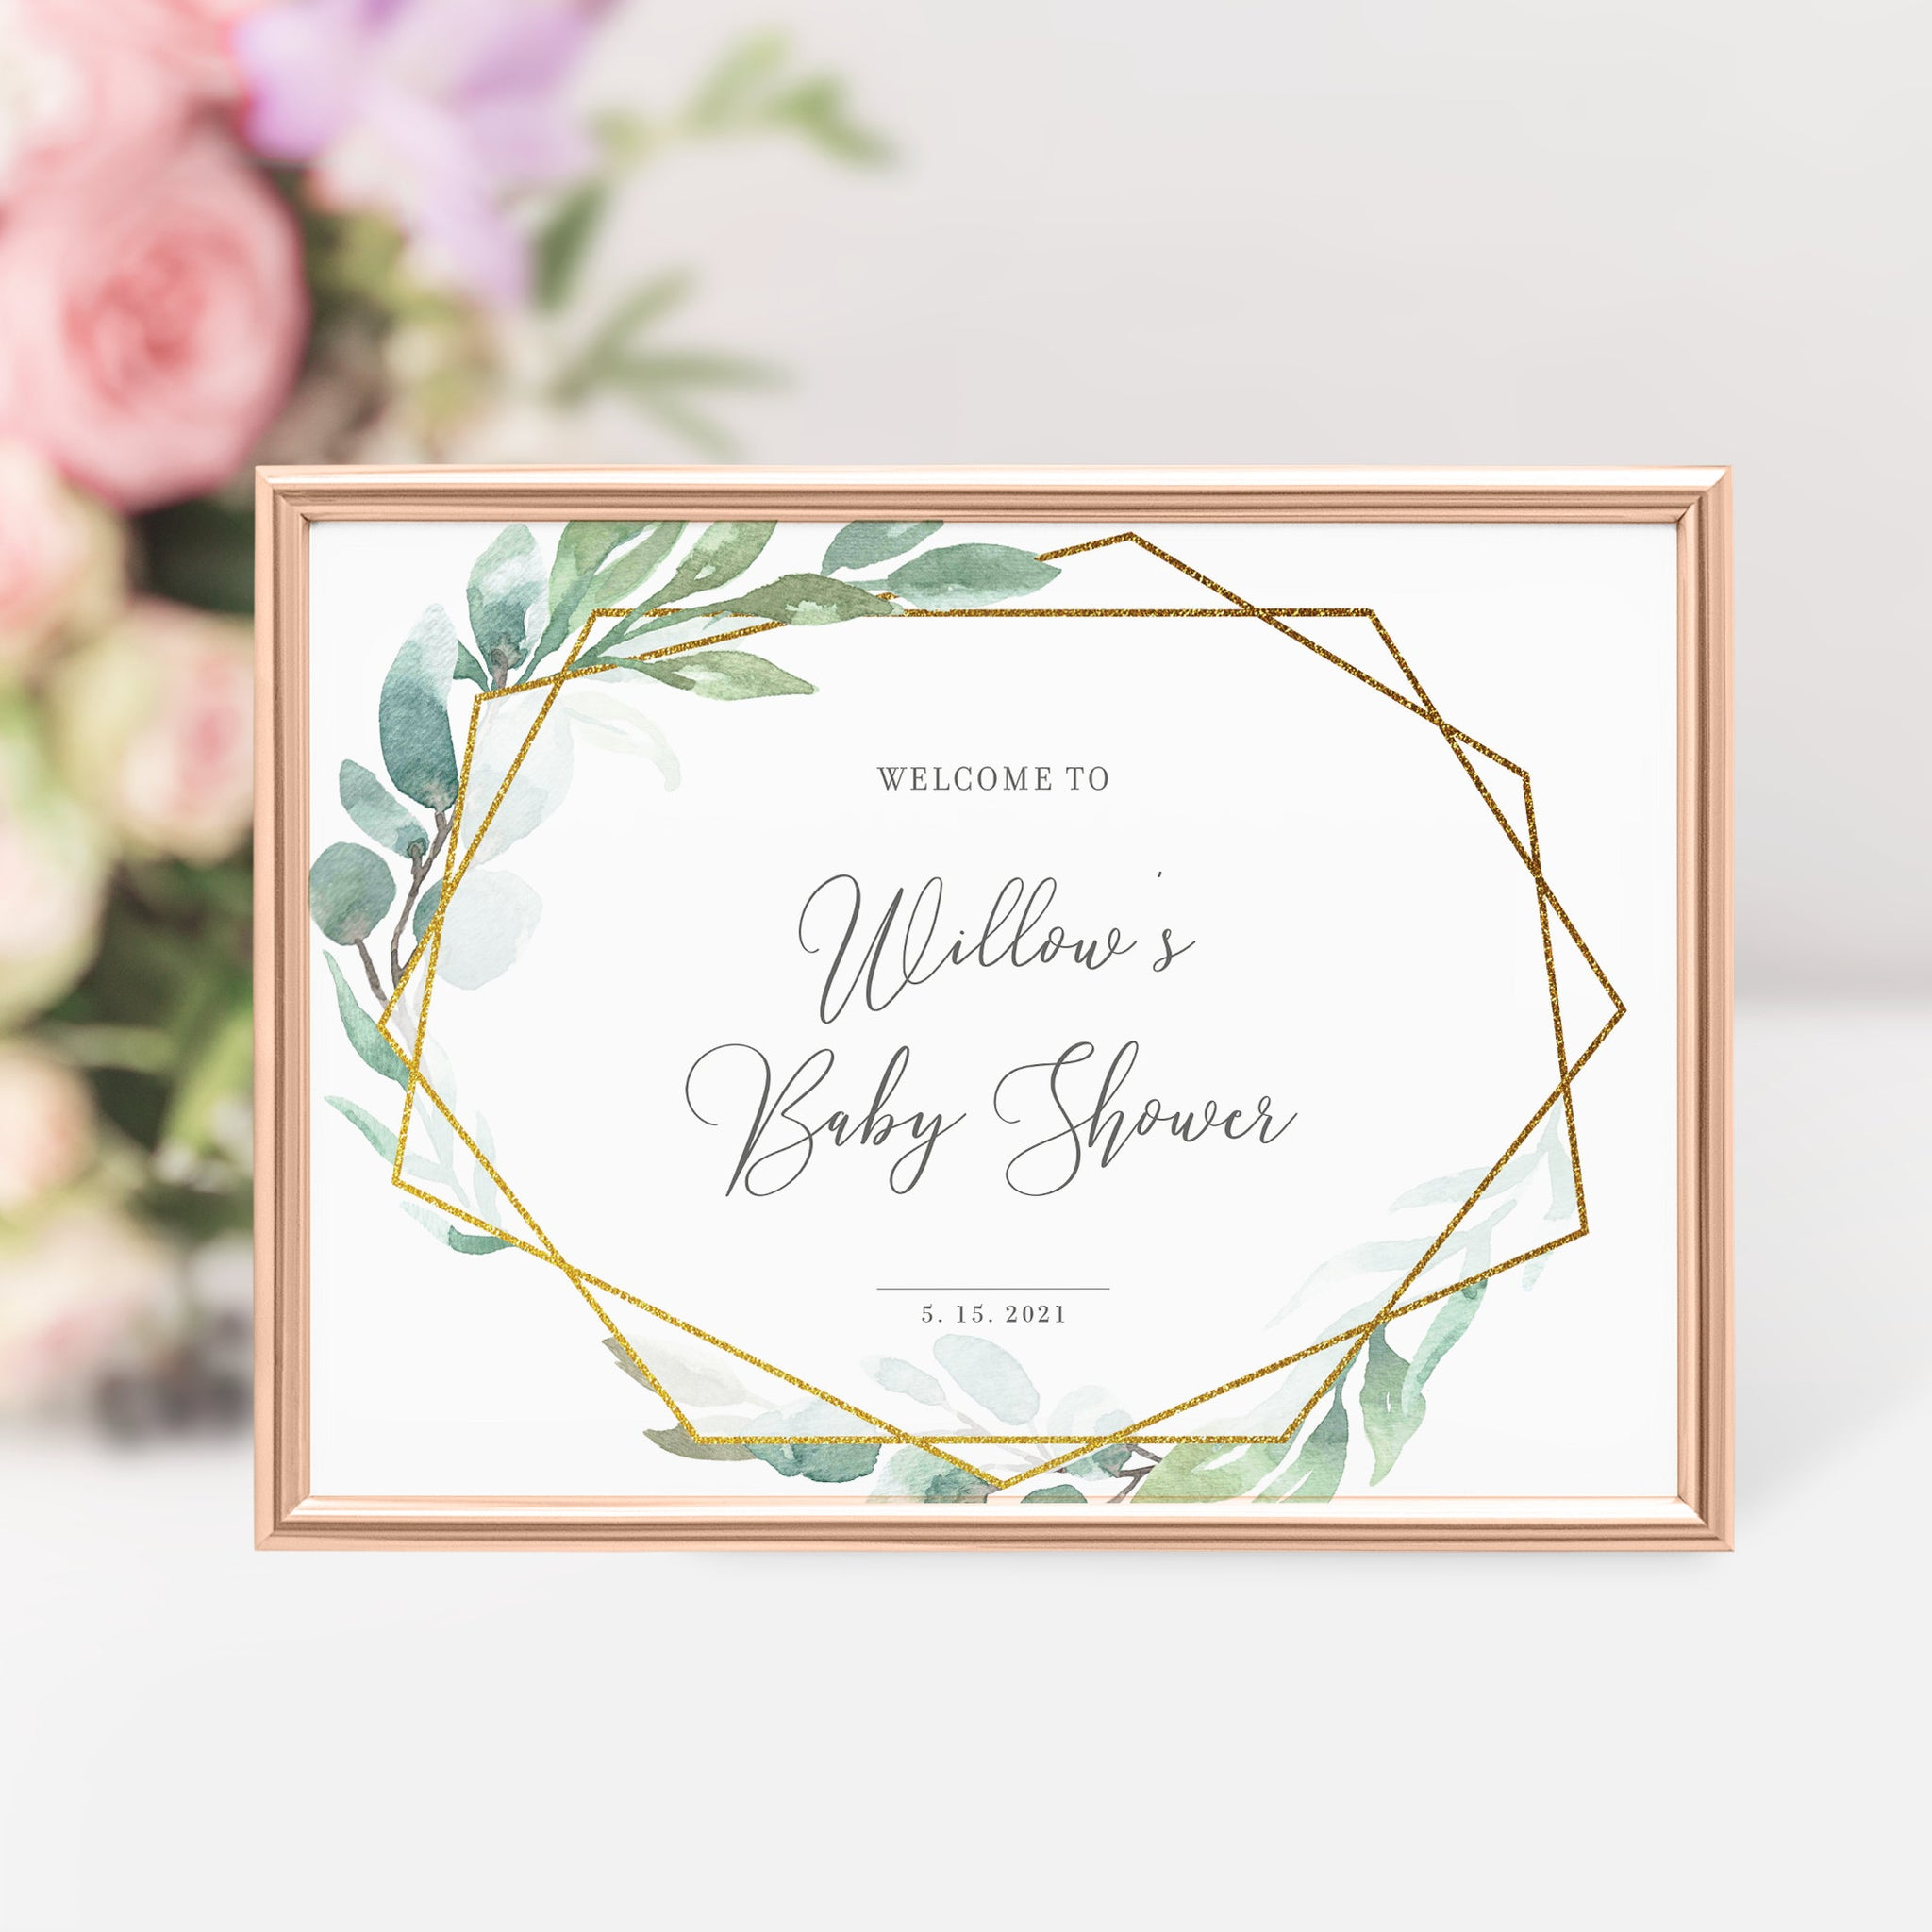 Greenery Baby Shower Welcome Sign Template, Large Welcome Sign Printable, Baby Shower Decorations Greenery, DIGITAL DOWNLOAD - GFG100